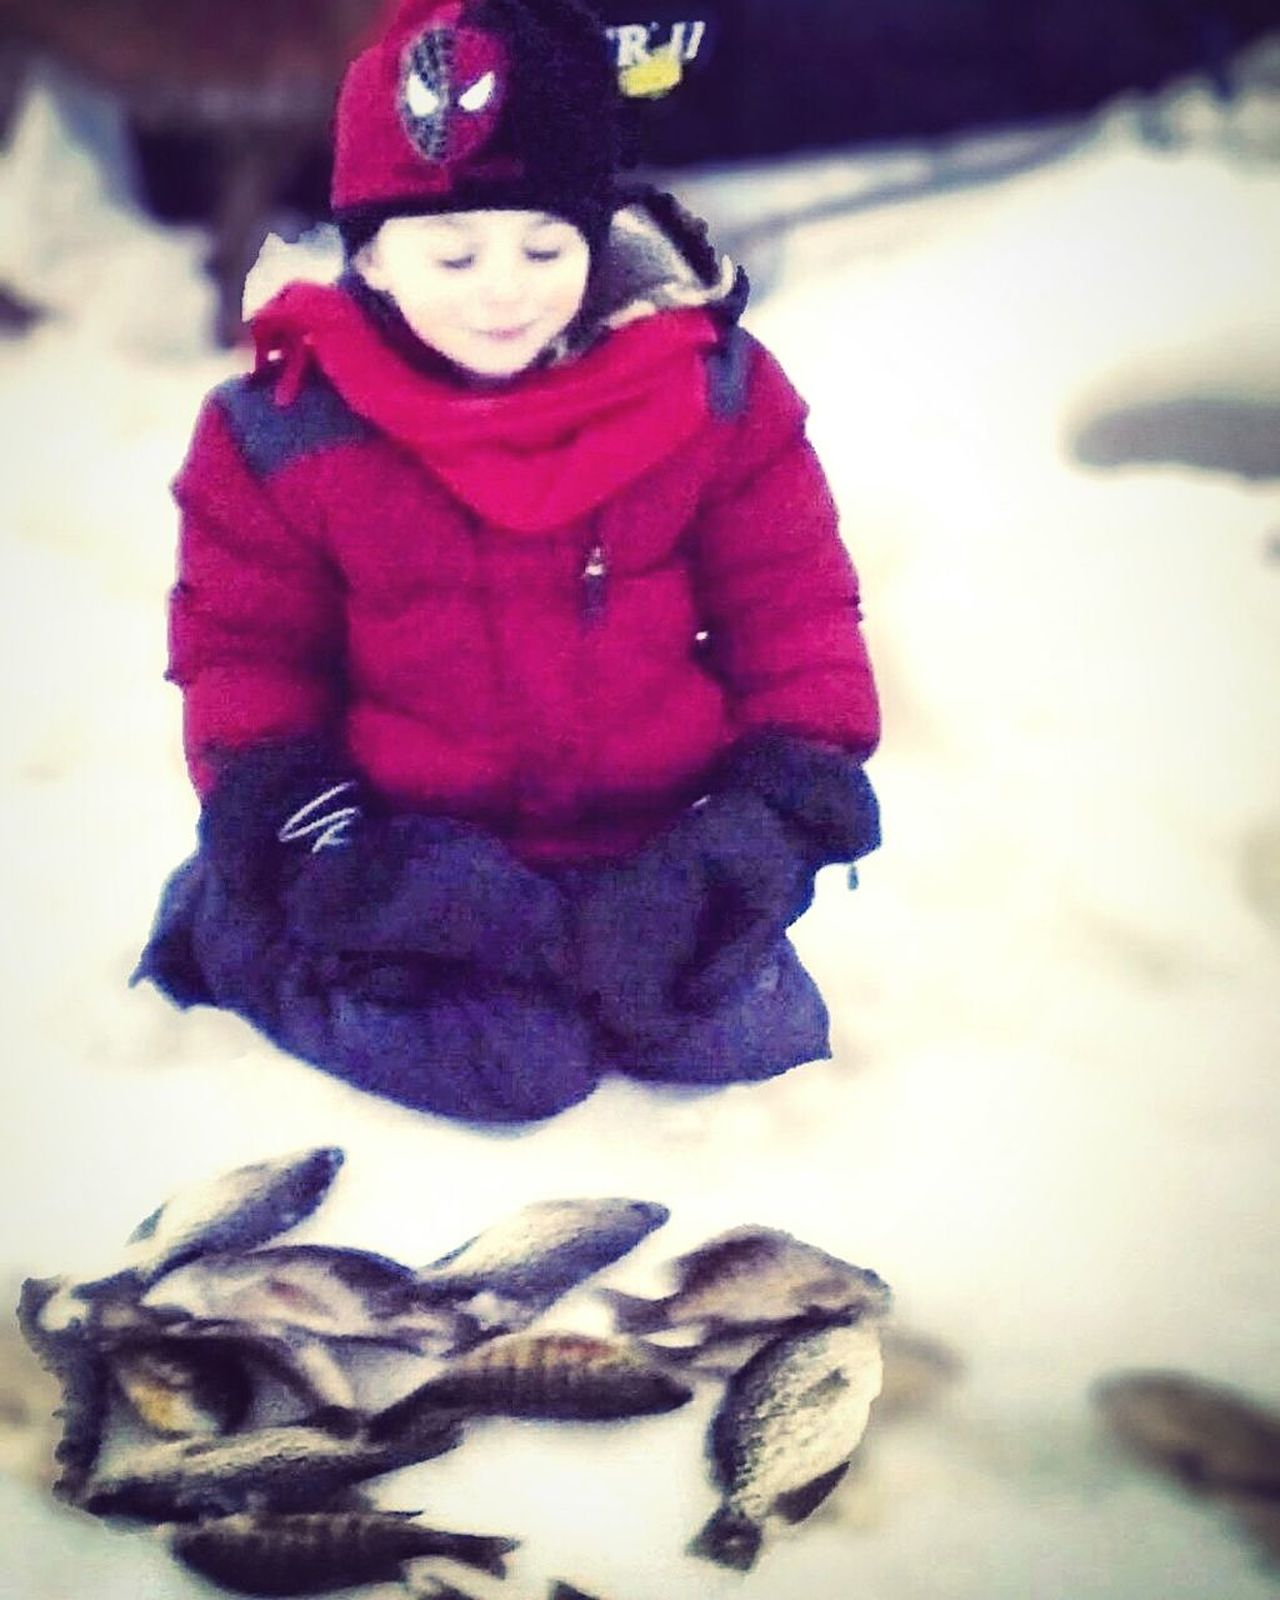 Child Winter Warm Clothing Cold Cold Temperature Catching Fish Ice Fishing Family Time Grandson Yaya Time One Boy One Boy Only Children Only Childhood One Person Outdoors Day Snow Fishing Boy My Photography BoysBoysBoys Boys Nature Photography Fishing Time